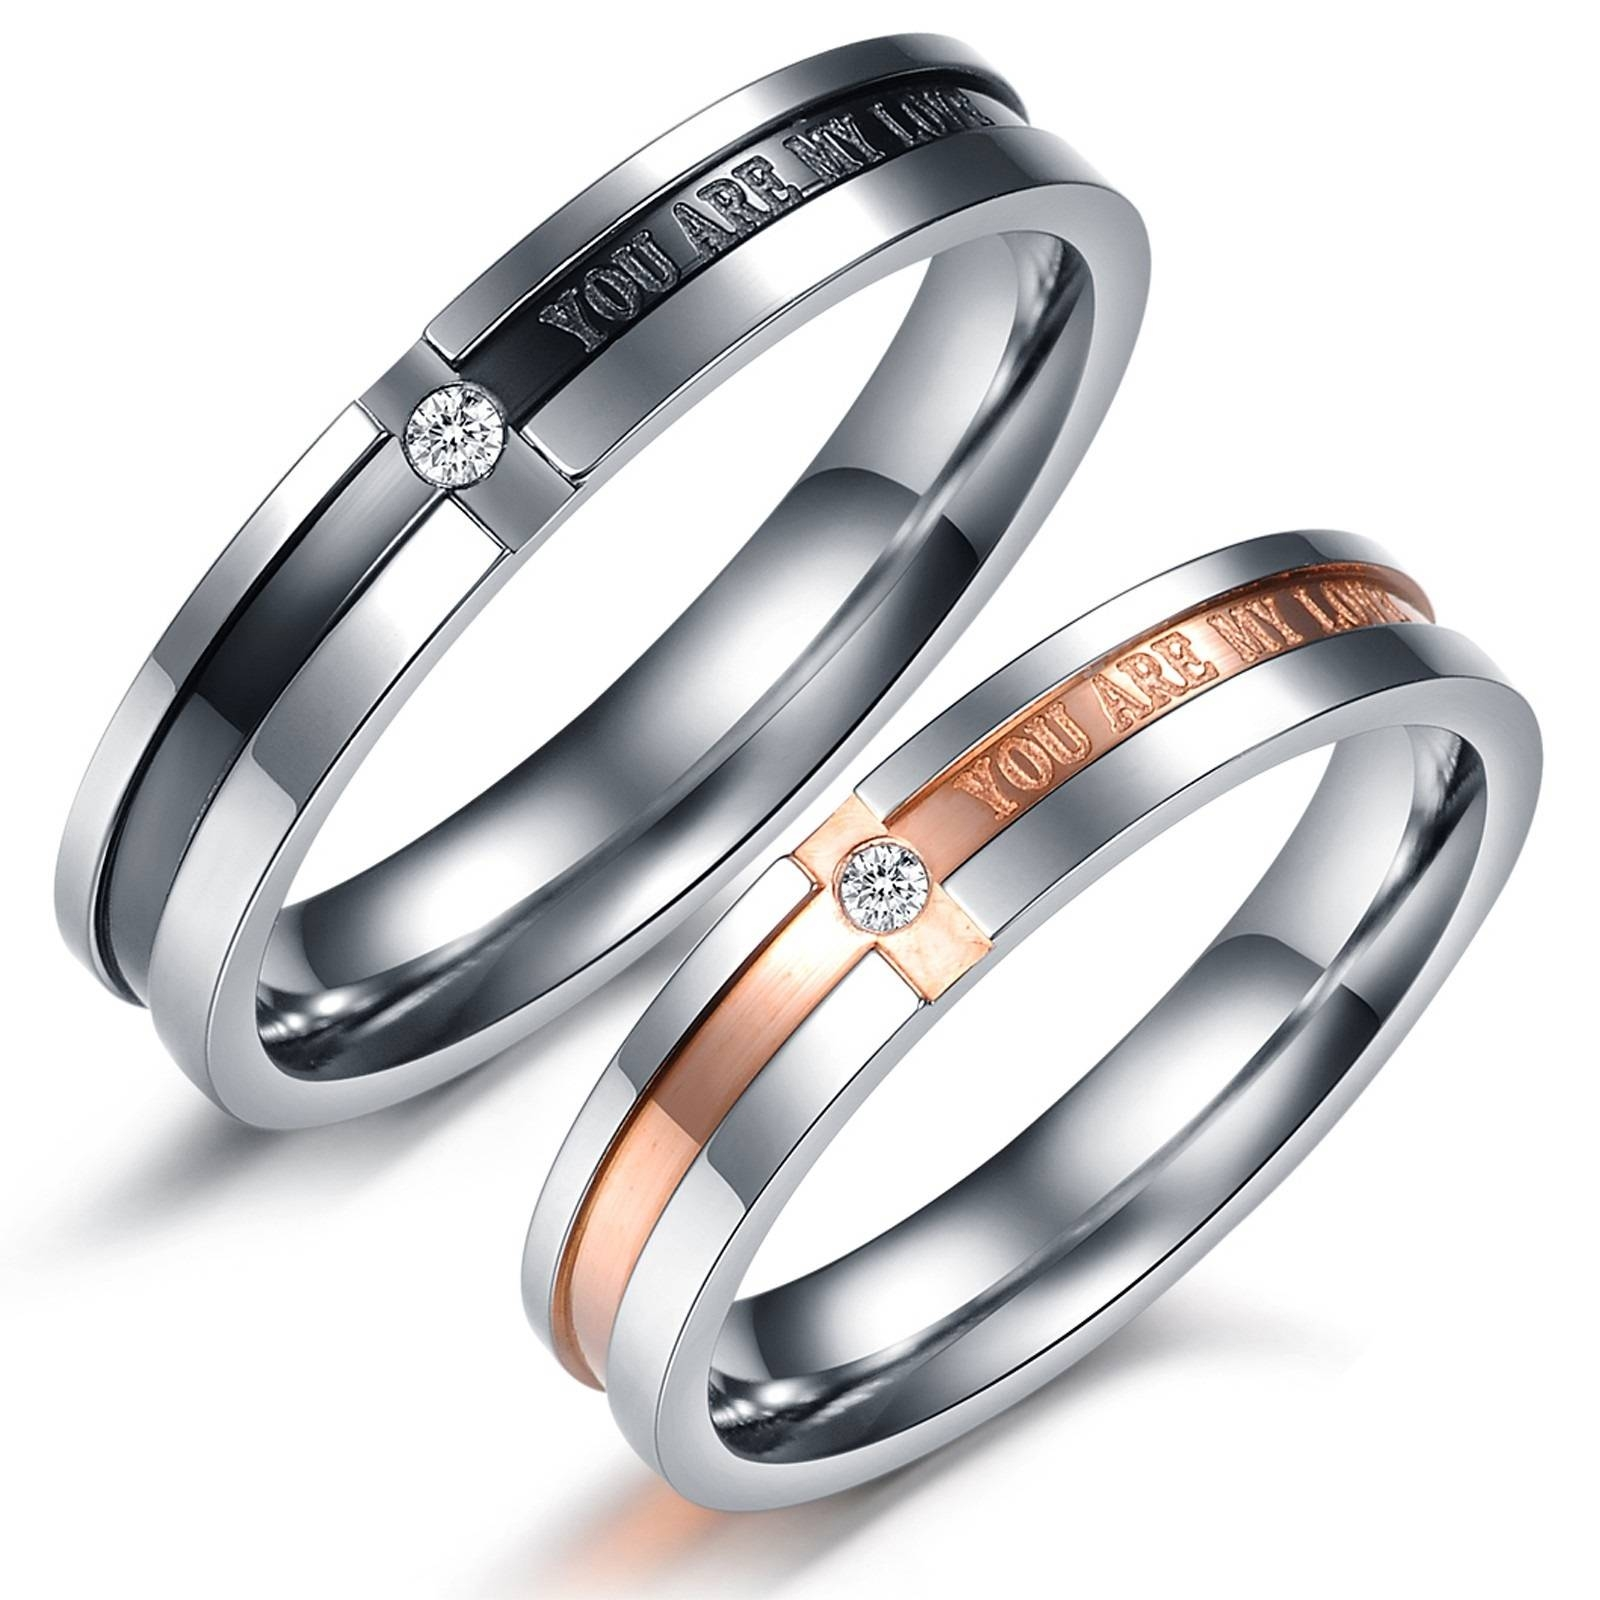 Wedding Rings : Disney Engagement Rings Alice Disney Wedding Rings Inside Tiffany Wedding Bands For Men (View 11 of 15)